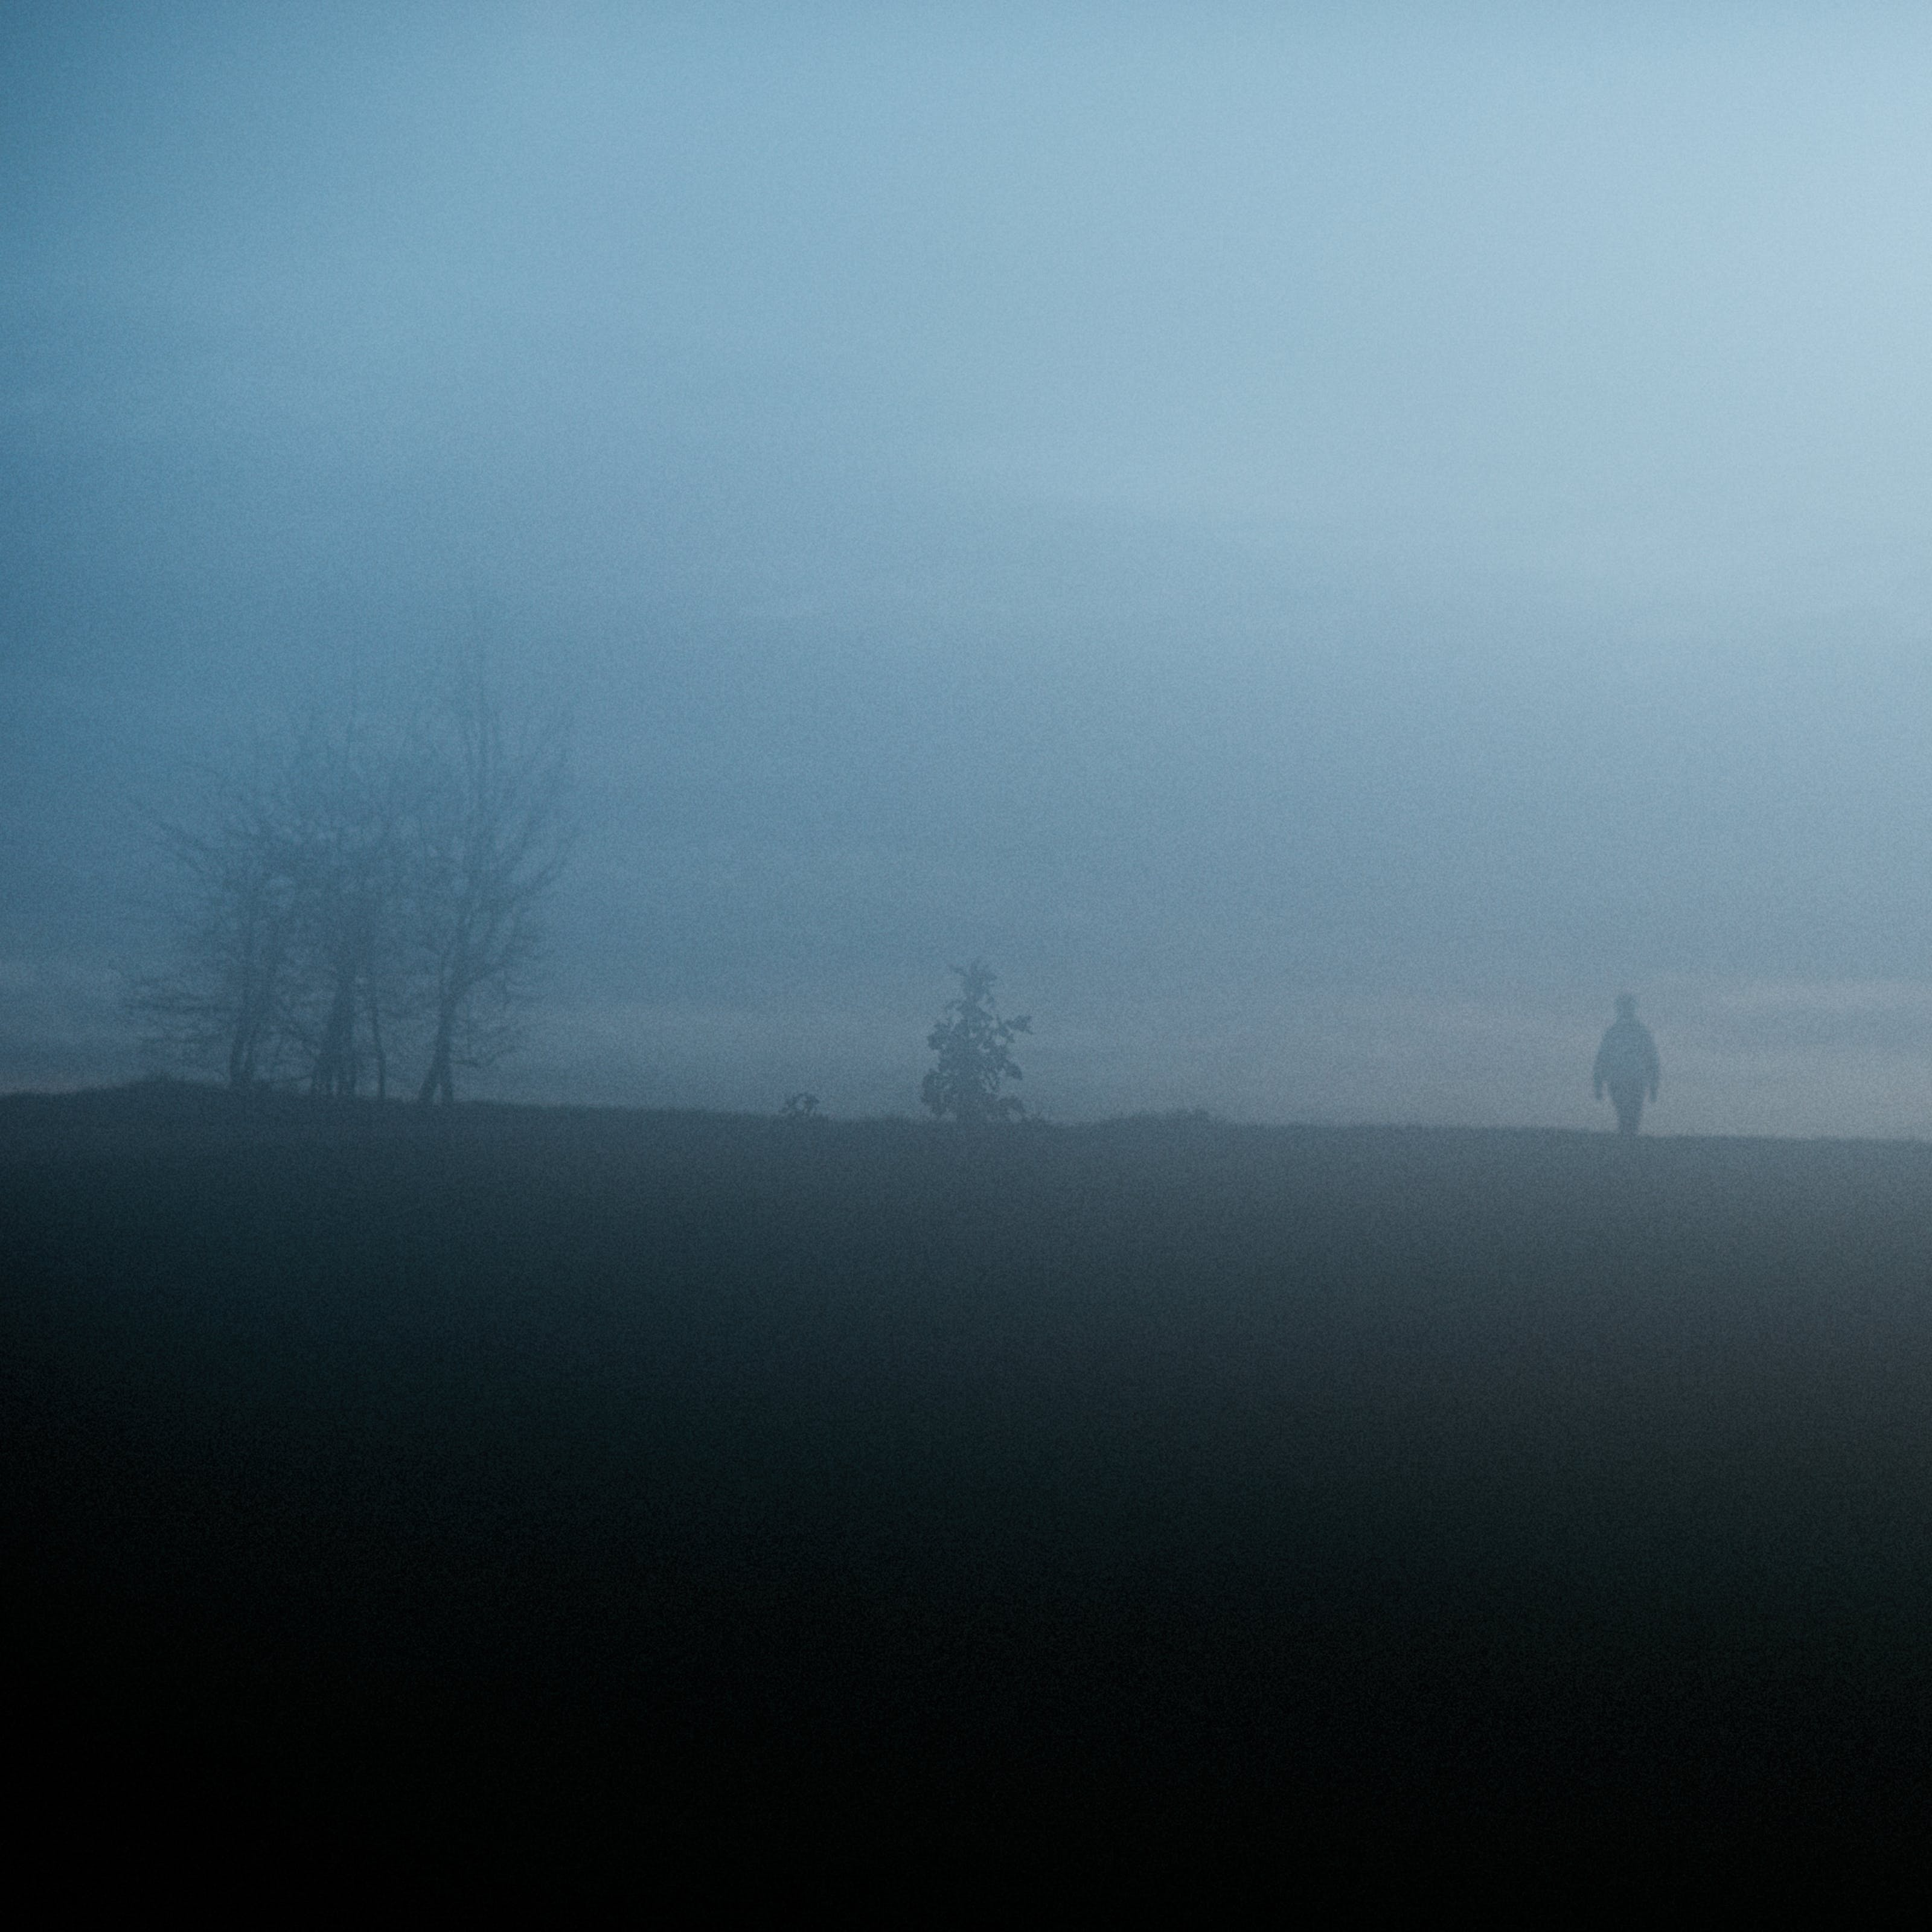 Photograph of a foggy park scene with a horizon line cutting horizontally through the landscape. Above the horizon line is a blue hued cloud ladened sky, grainy and misty. Below the horizon line is the dark green of the parkland grass. rising up from the horizon in silhouette are the shapes of trees, a park bench and a solitary figure of a person.